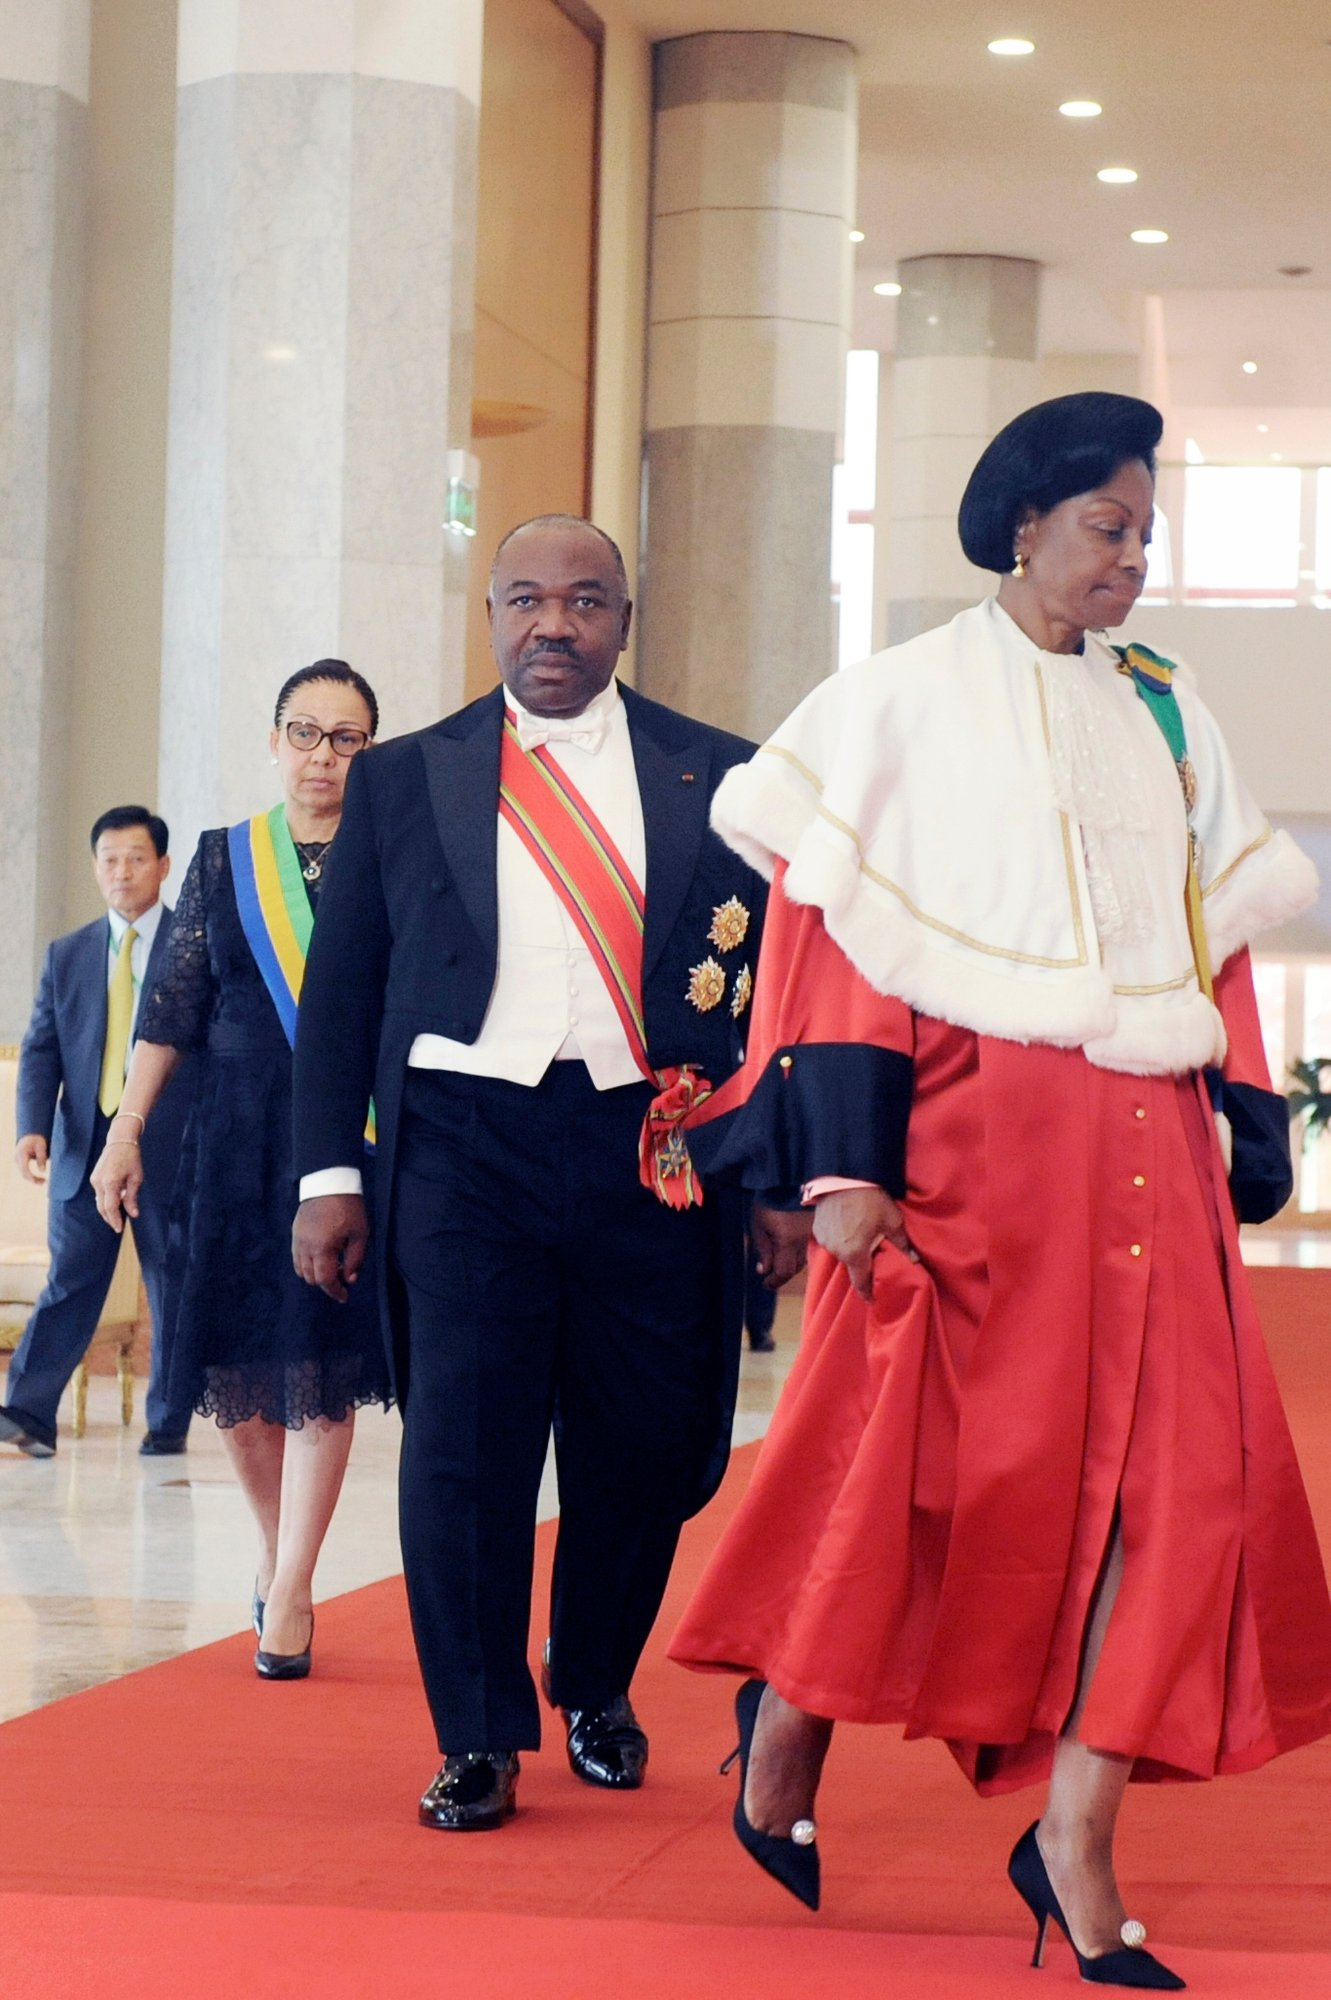 Si besoinThe President of Gabon Constitutional Court Marie-Madeleine Mborantsuo (C) walks ahead of President elected Ali Bongo Ondimba during the swearing in ceremony in Libreville on September 27, 2016. - Ali Bongo was sworn in for second term as Gabon president, calling for unity after a disputed election win that sparked deadly unrest and revealed deep divisions in the oil-rich country. (Photo by STEVE JORDAN / AFP)